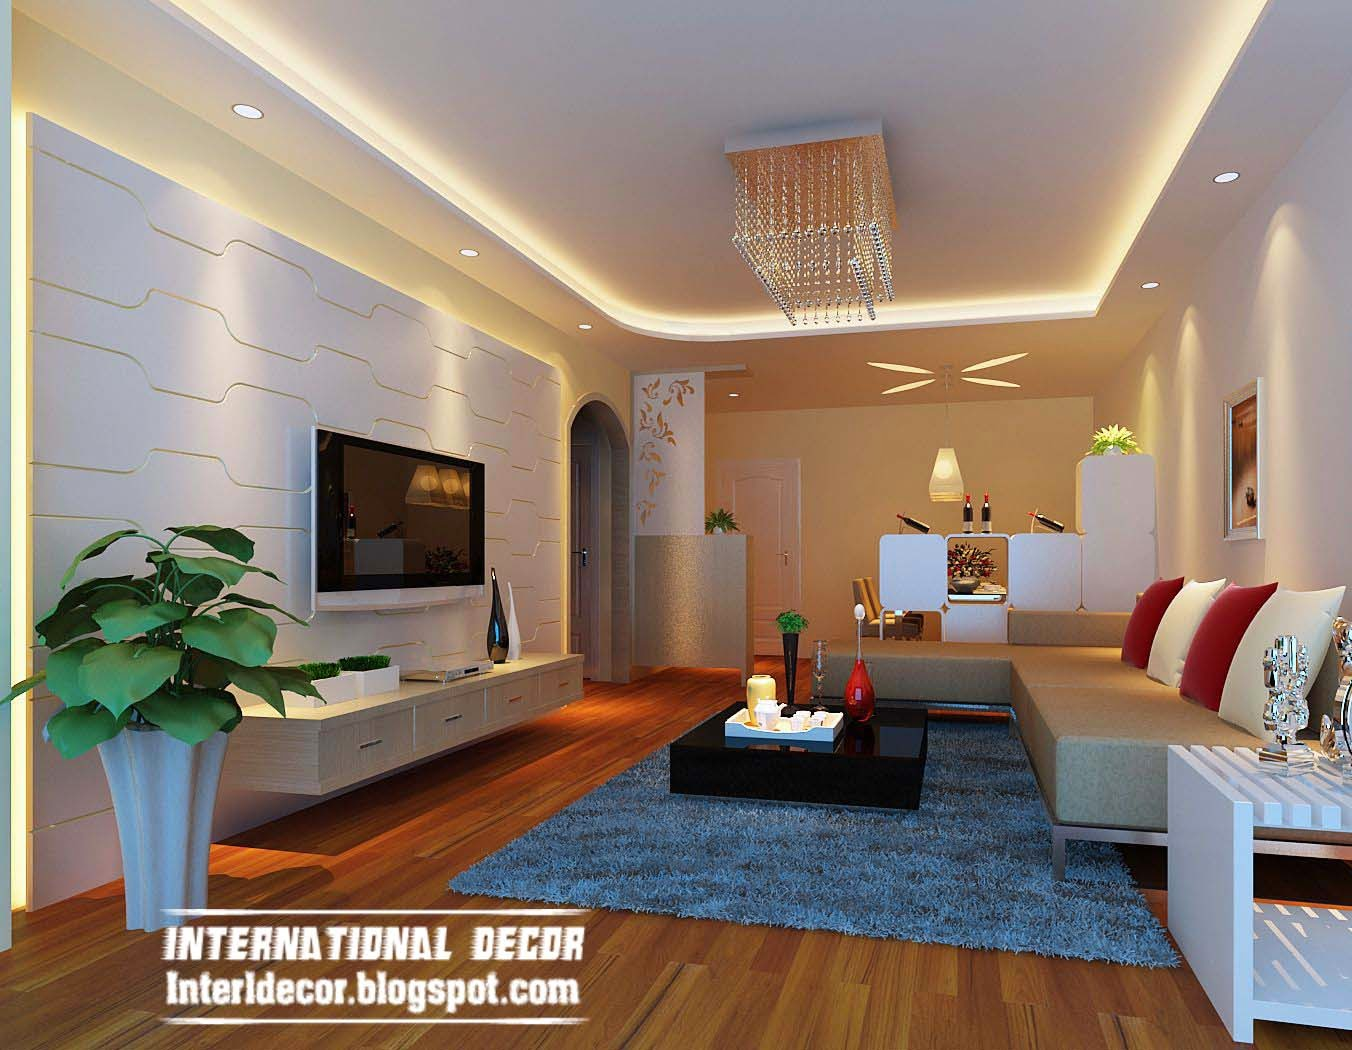 Top 10 suspended ceiling tiles designs and lighting for for Best room designs